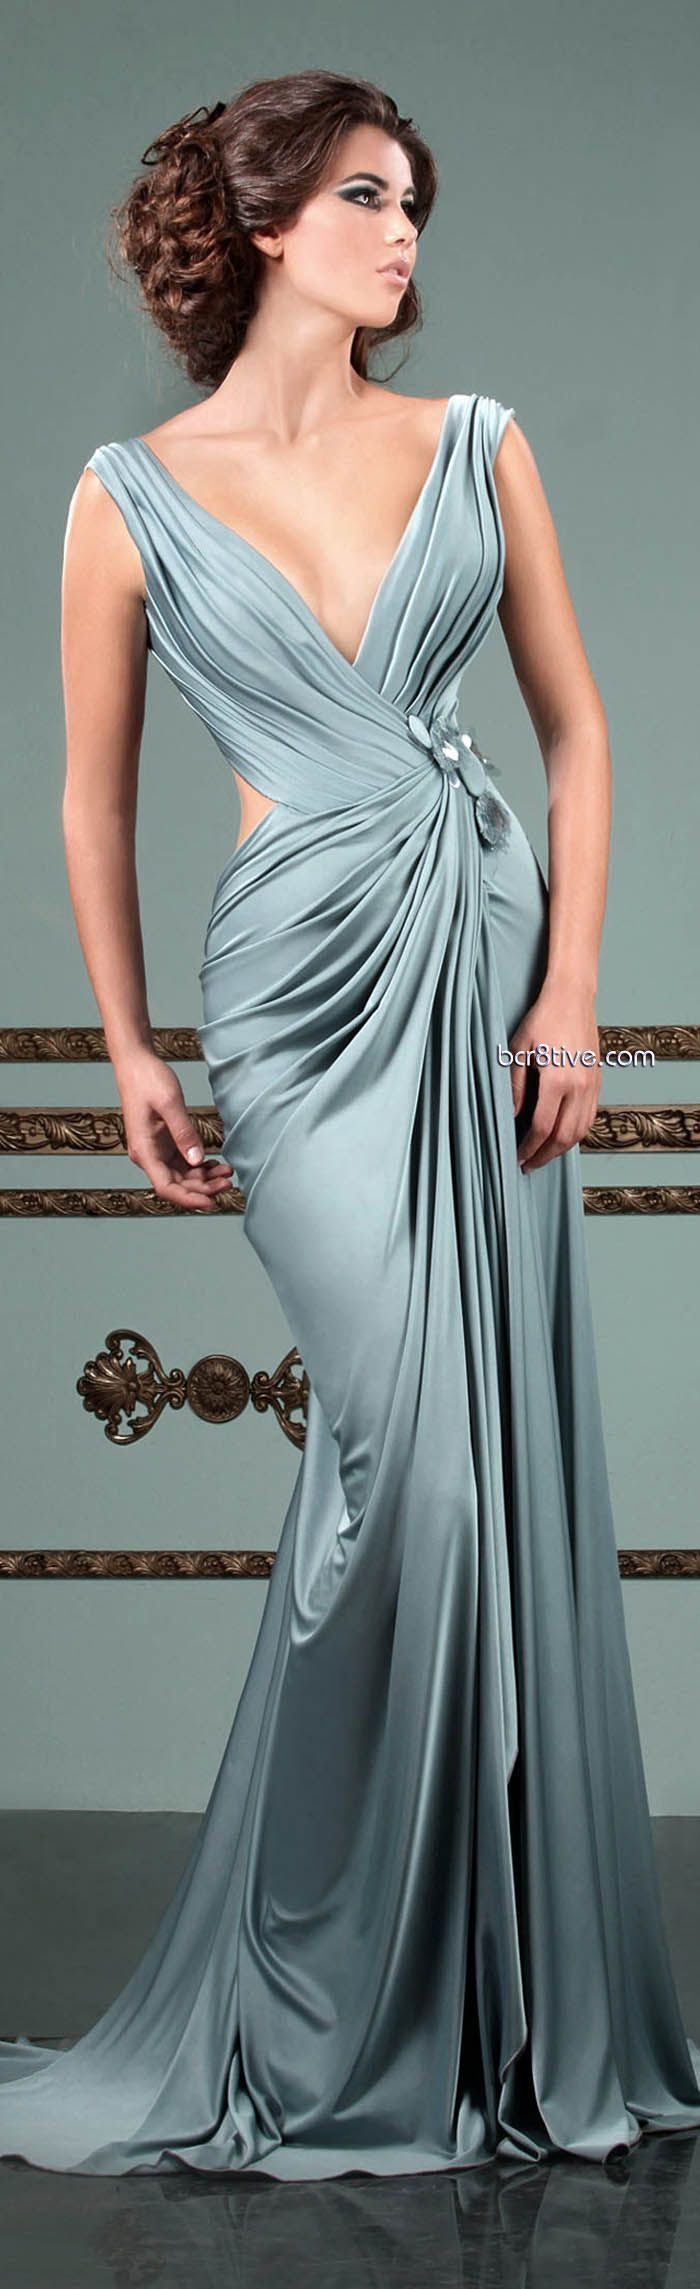 T couture prom dresses 6th